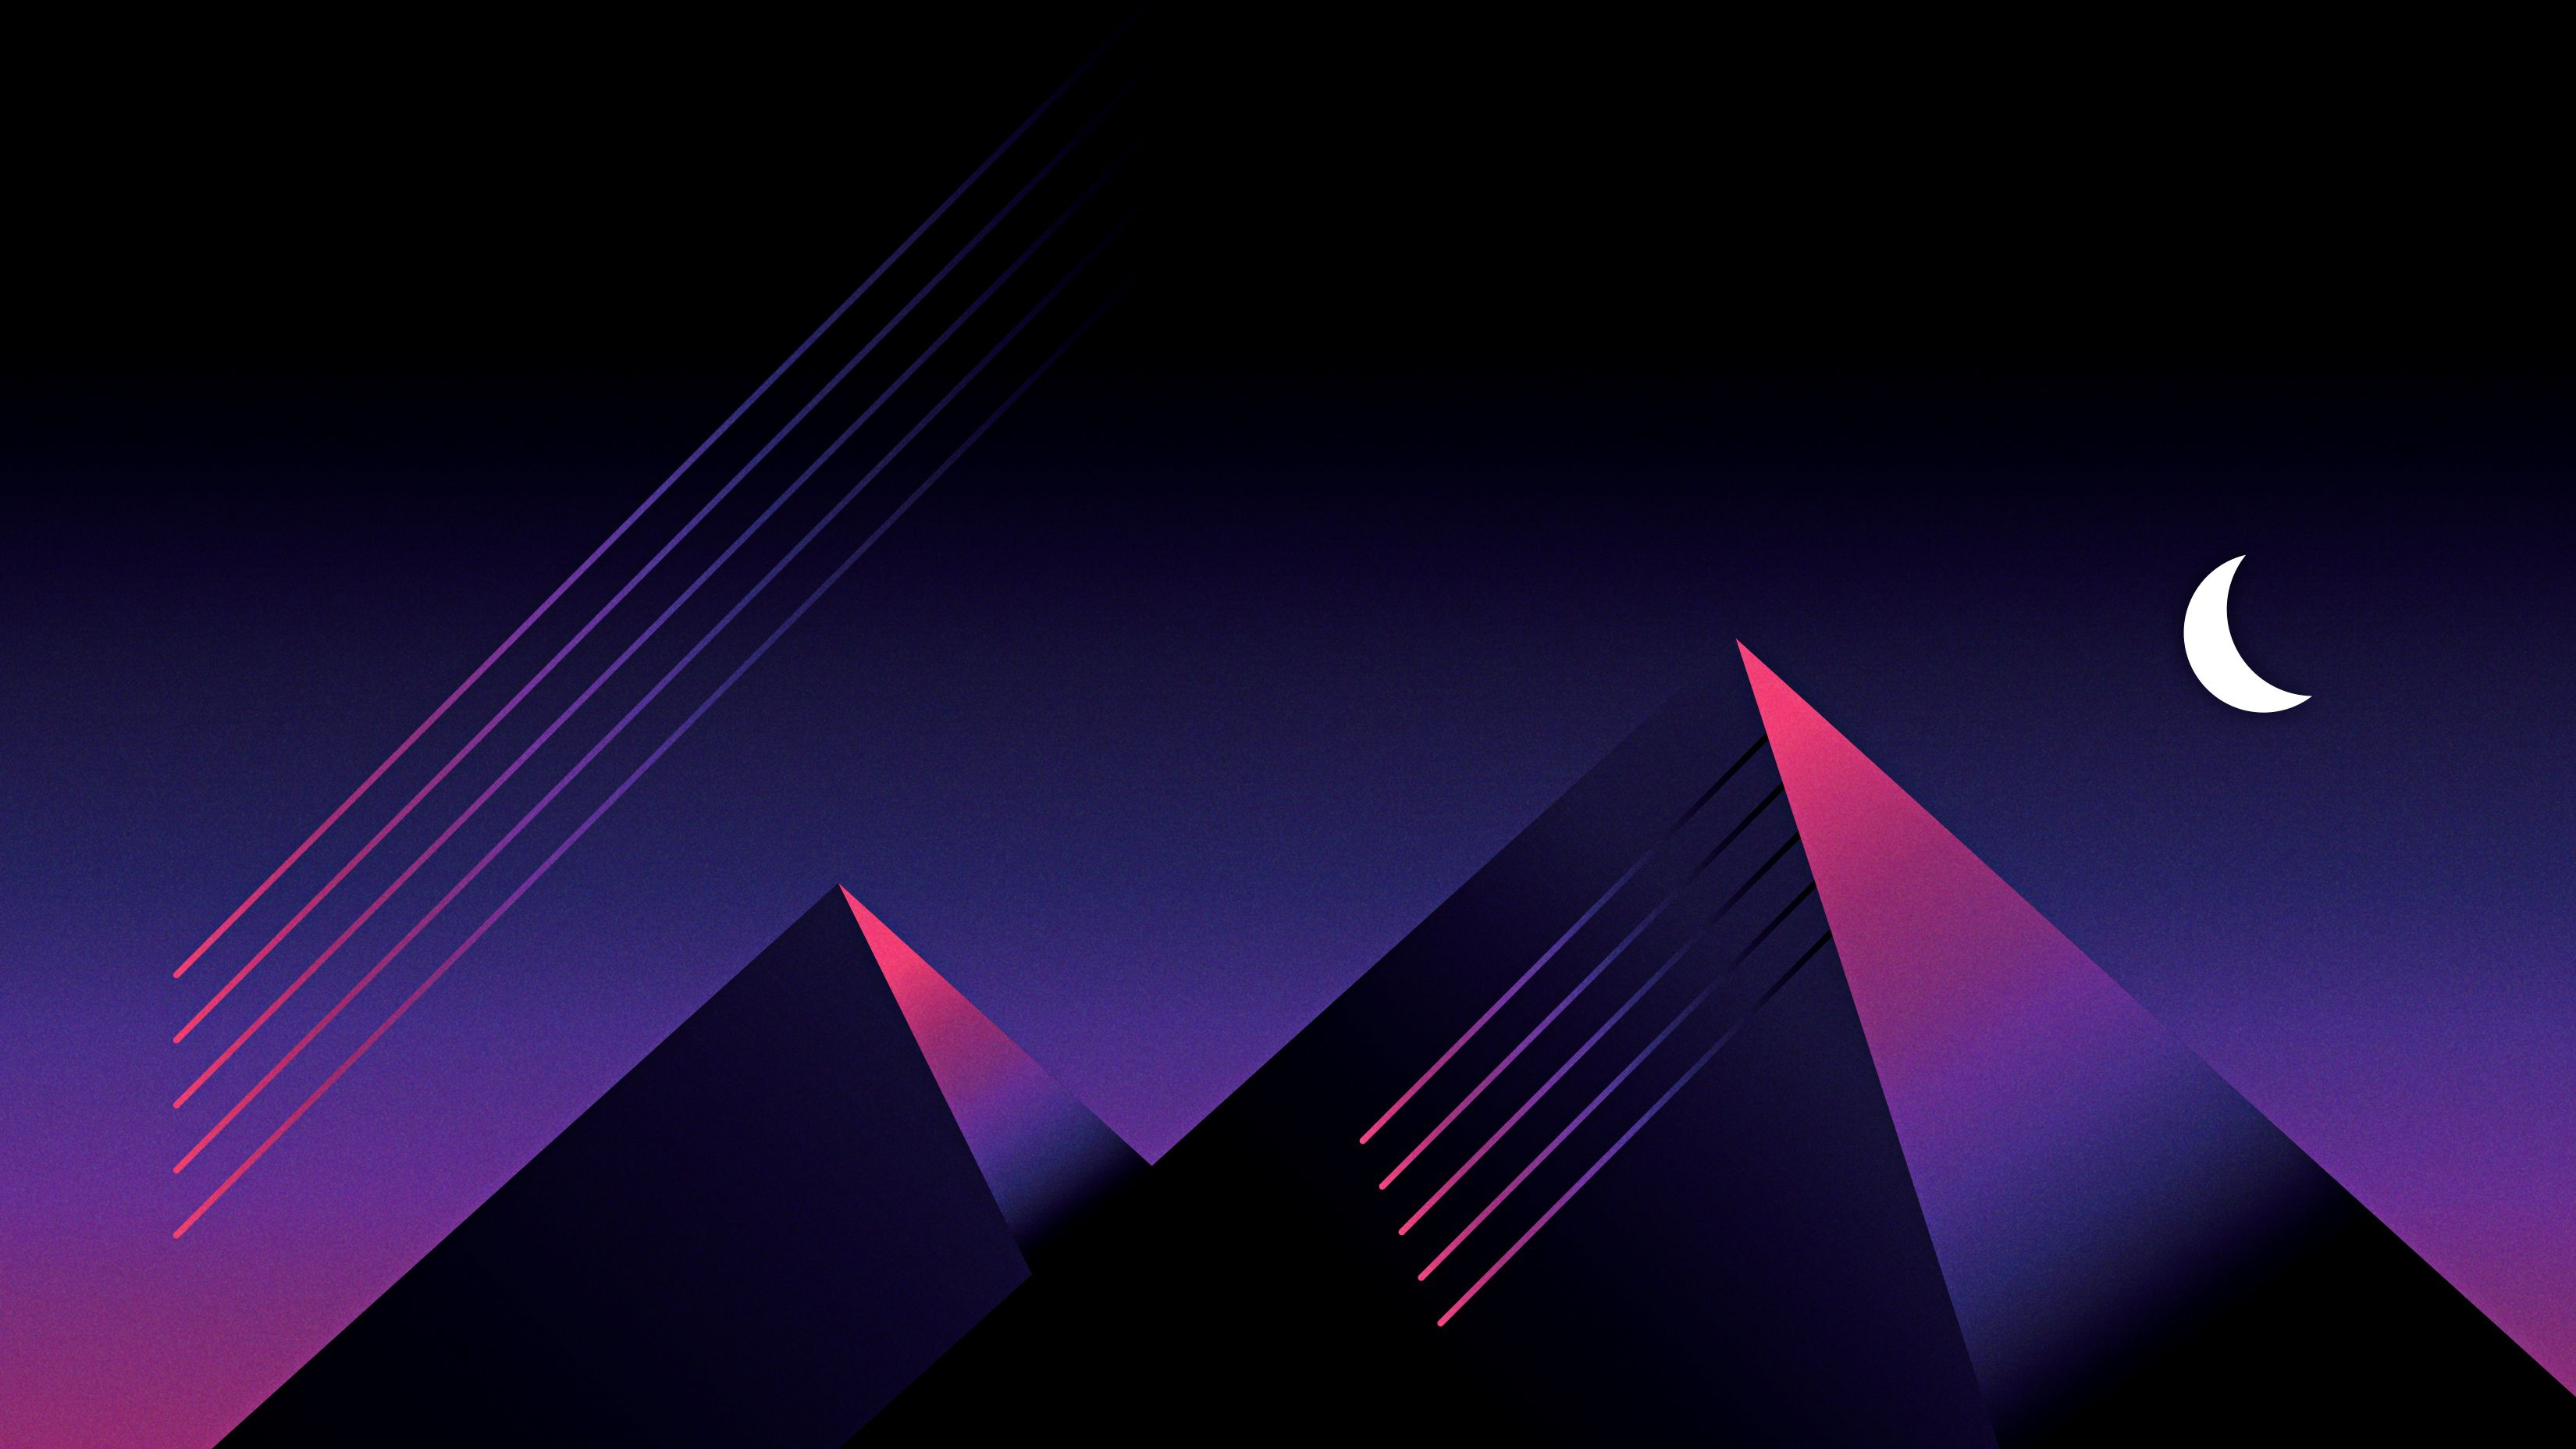 Retrowave Outrun Mountains Night, HD Artist, 4k Wallpapers, Image, Backgrounds, Photos and Pictures